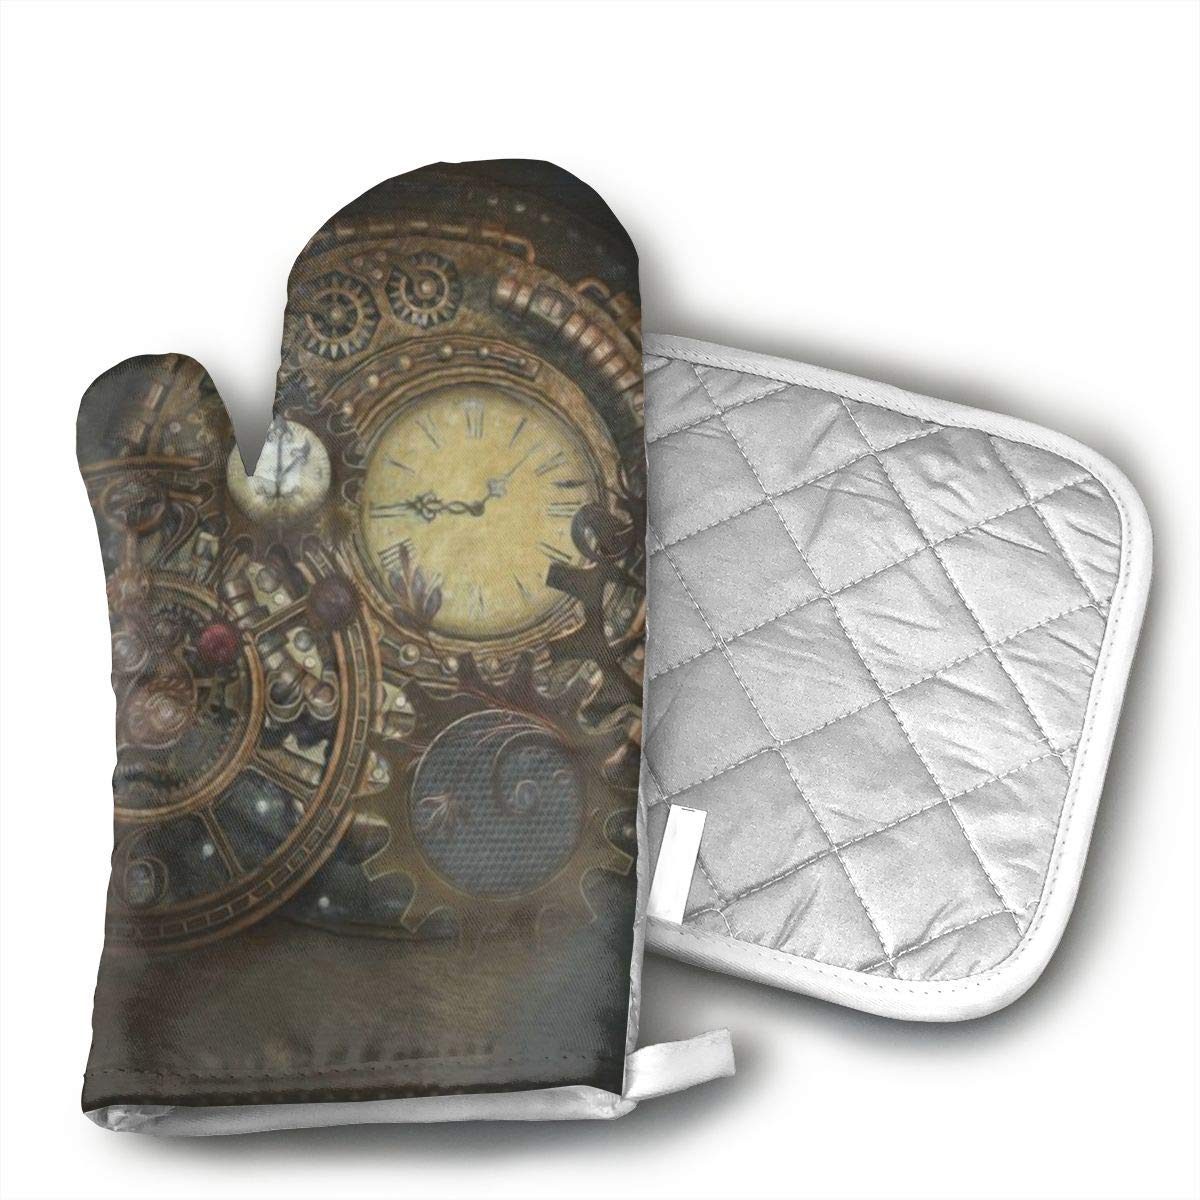 GRSTfsm Steampunk Clocks Oven Mitts,Heat Resistant Oven Gloves and Pot Holders, Safe BBQ Cooking Baking Grilling